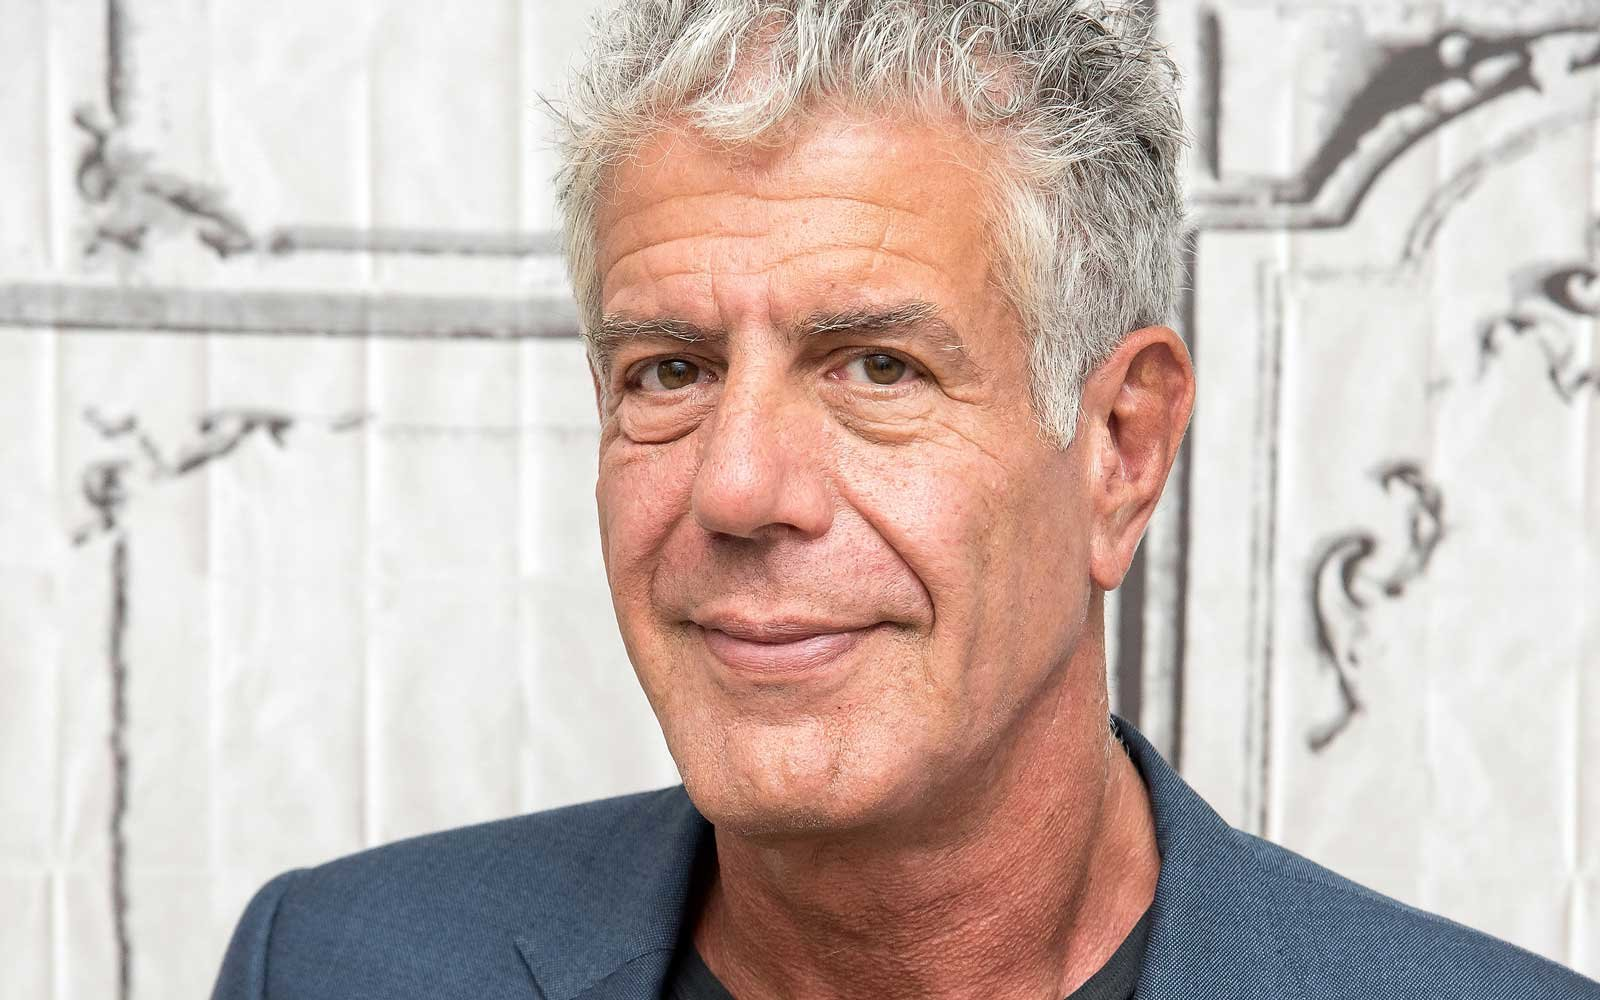 Popular celebrity chef and TV Host Anthony Bourdain